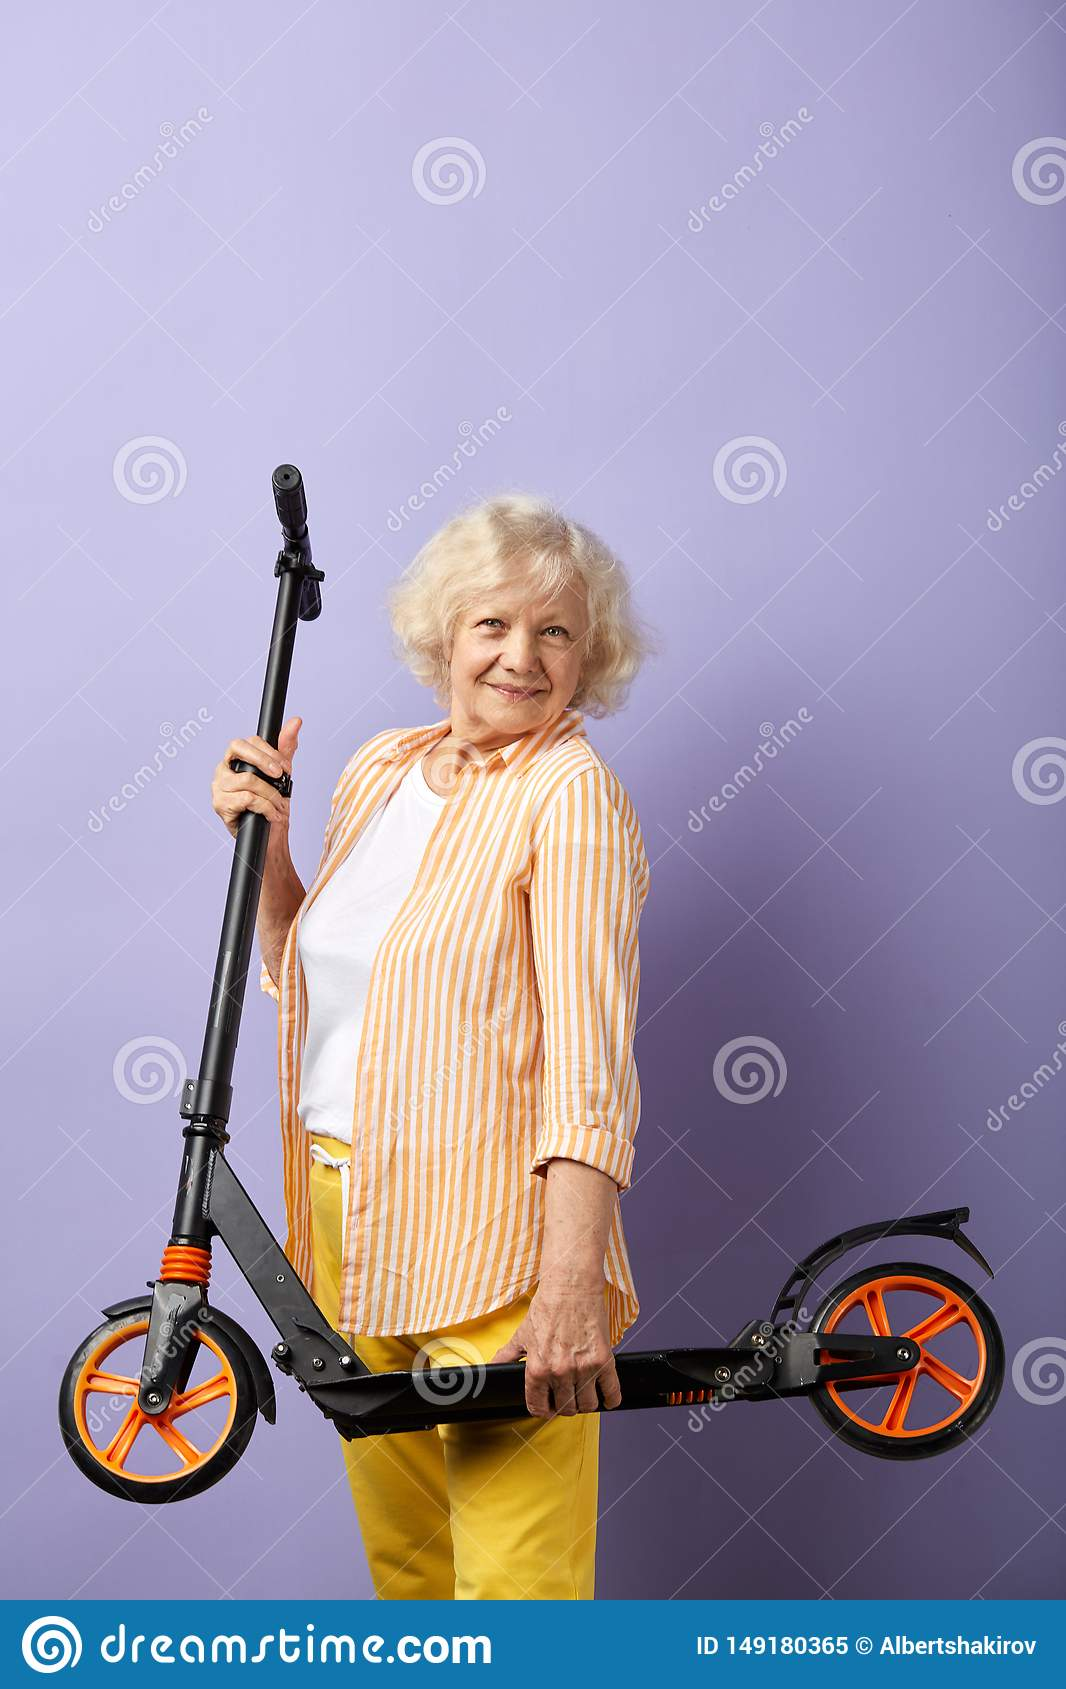 So fun. Happy elderly woman keeps in hands scooter ready for a ride.